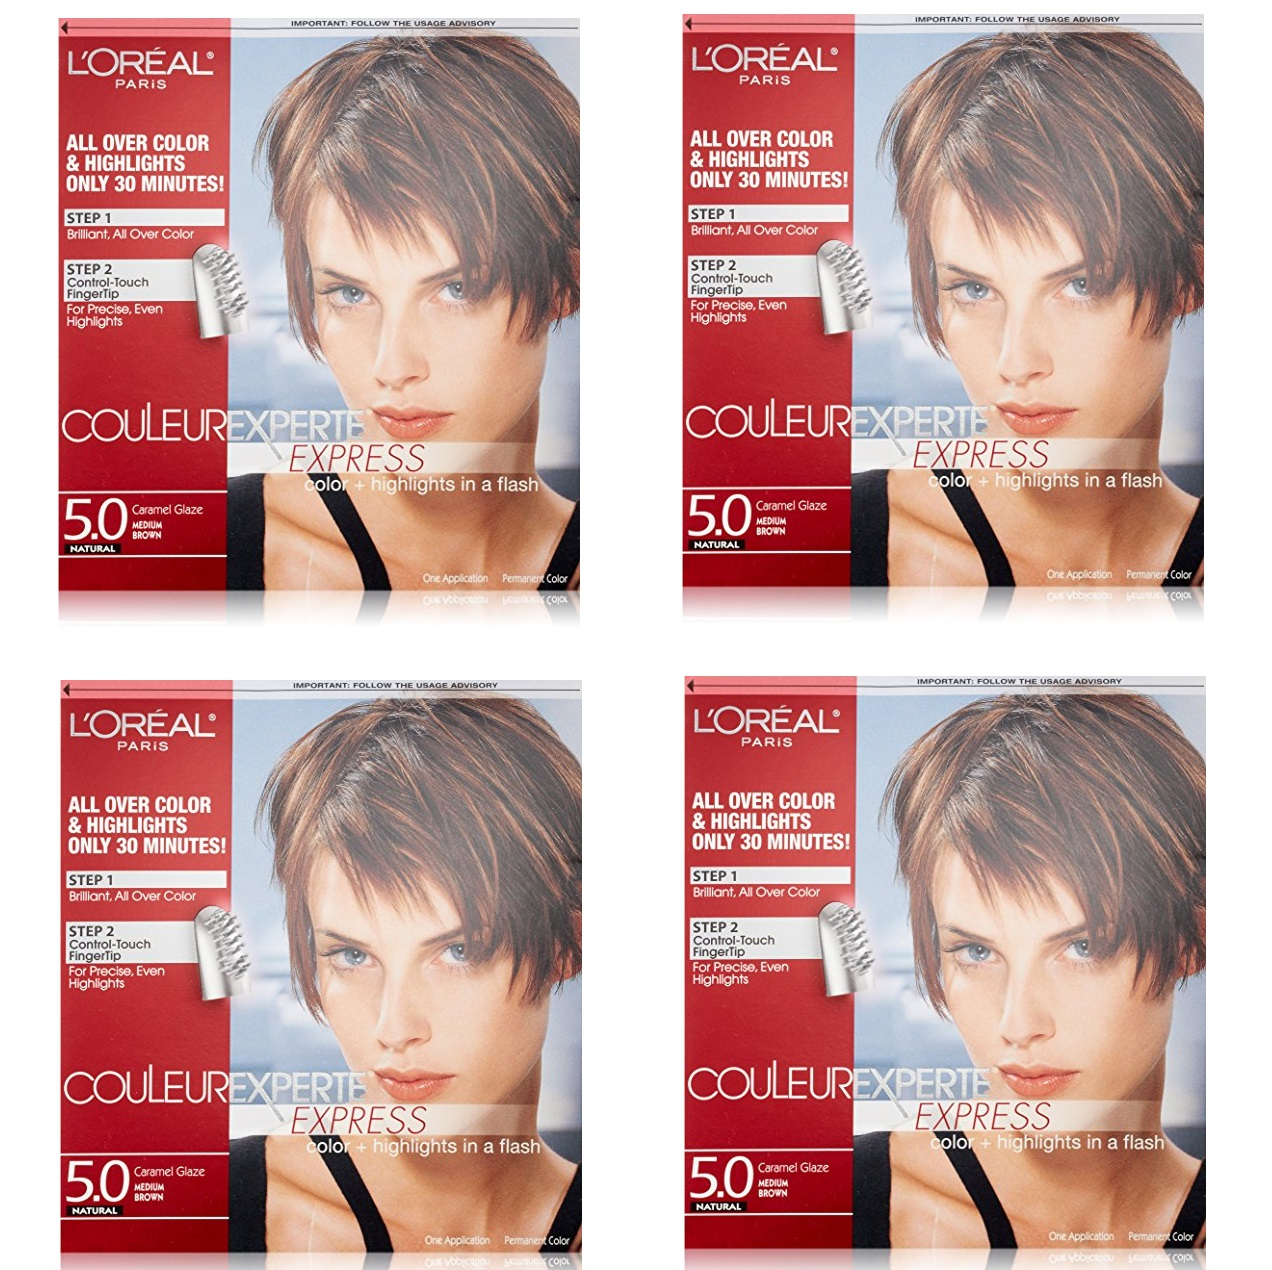 L'Oreal Paris Couleur Experte Express Hair Color + Highlights, Permanent 5.0 Natural Caramel Glaze Medium Brown (Pack of 4)